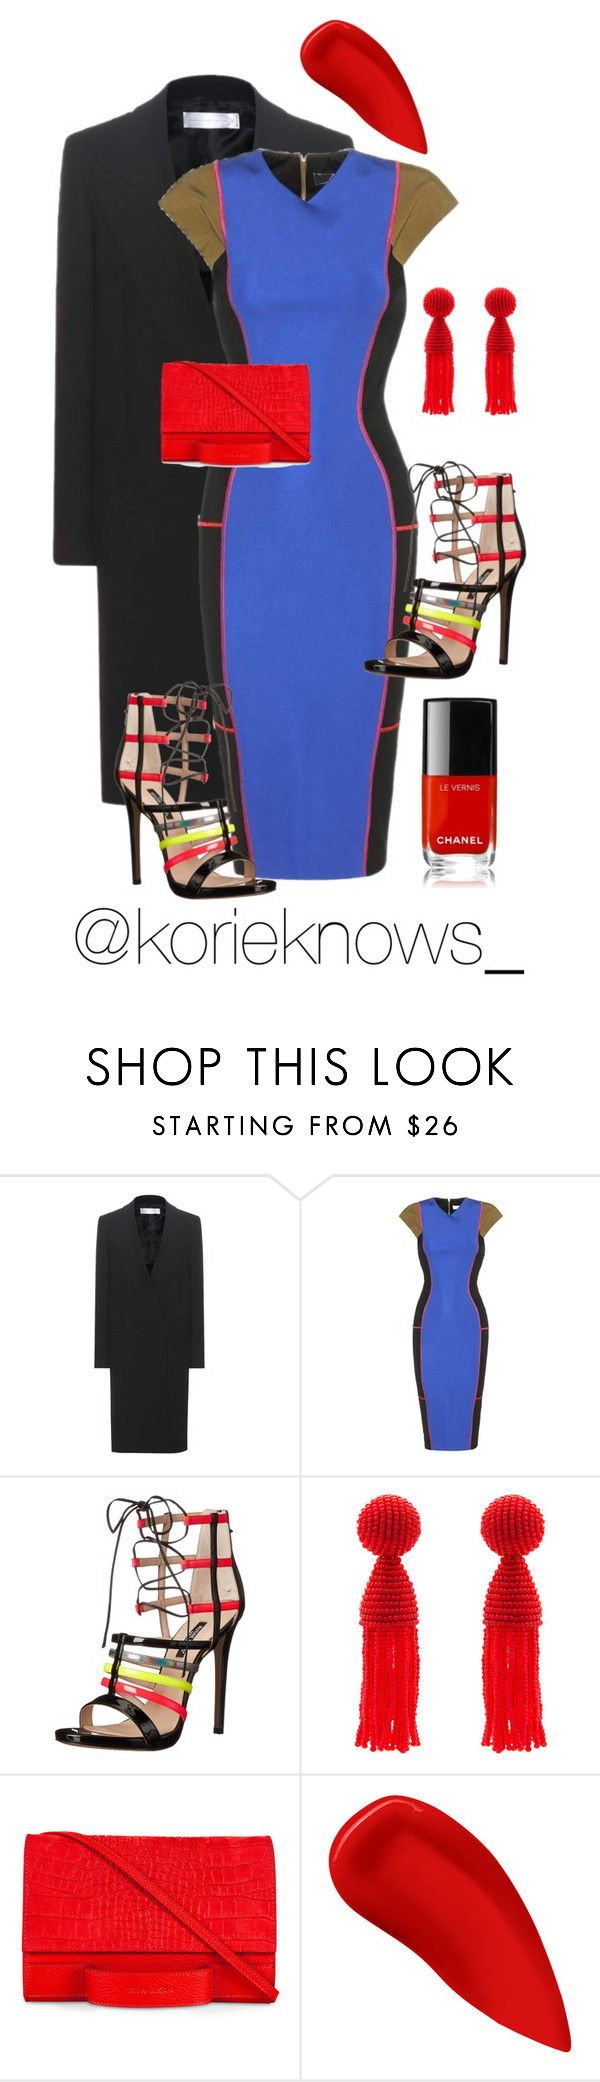 """Modalist"" by riskyclothing ❤ liked on Polyvore featuring Victoria, Victoria Beckham, Victoria Beckham, Ruthie Davis, Oscar de la Renta, Esin Akan, Lipstick Queen and Chanel"